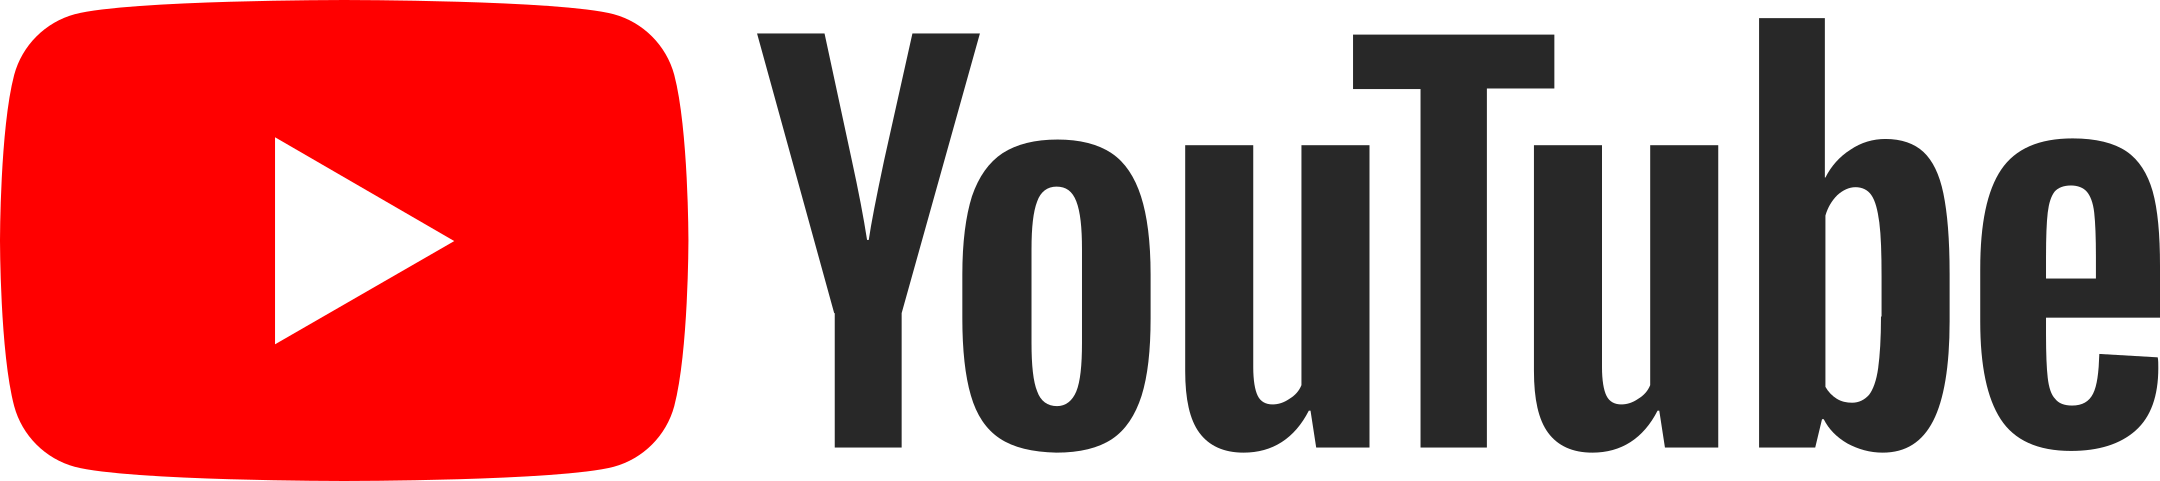 youtube logo 1 3 - YouTube Logo